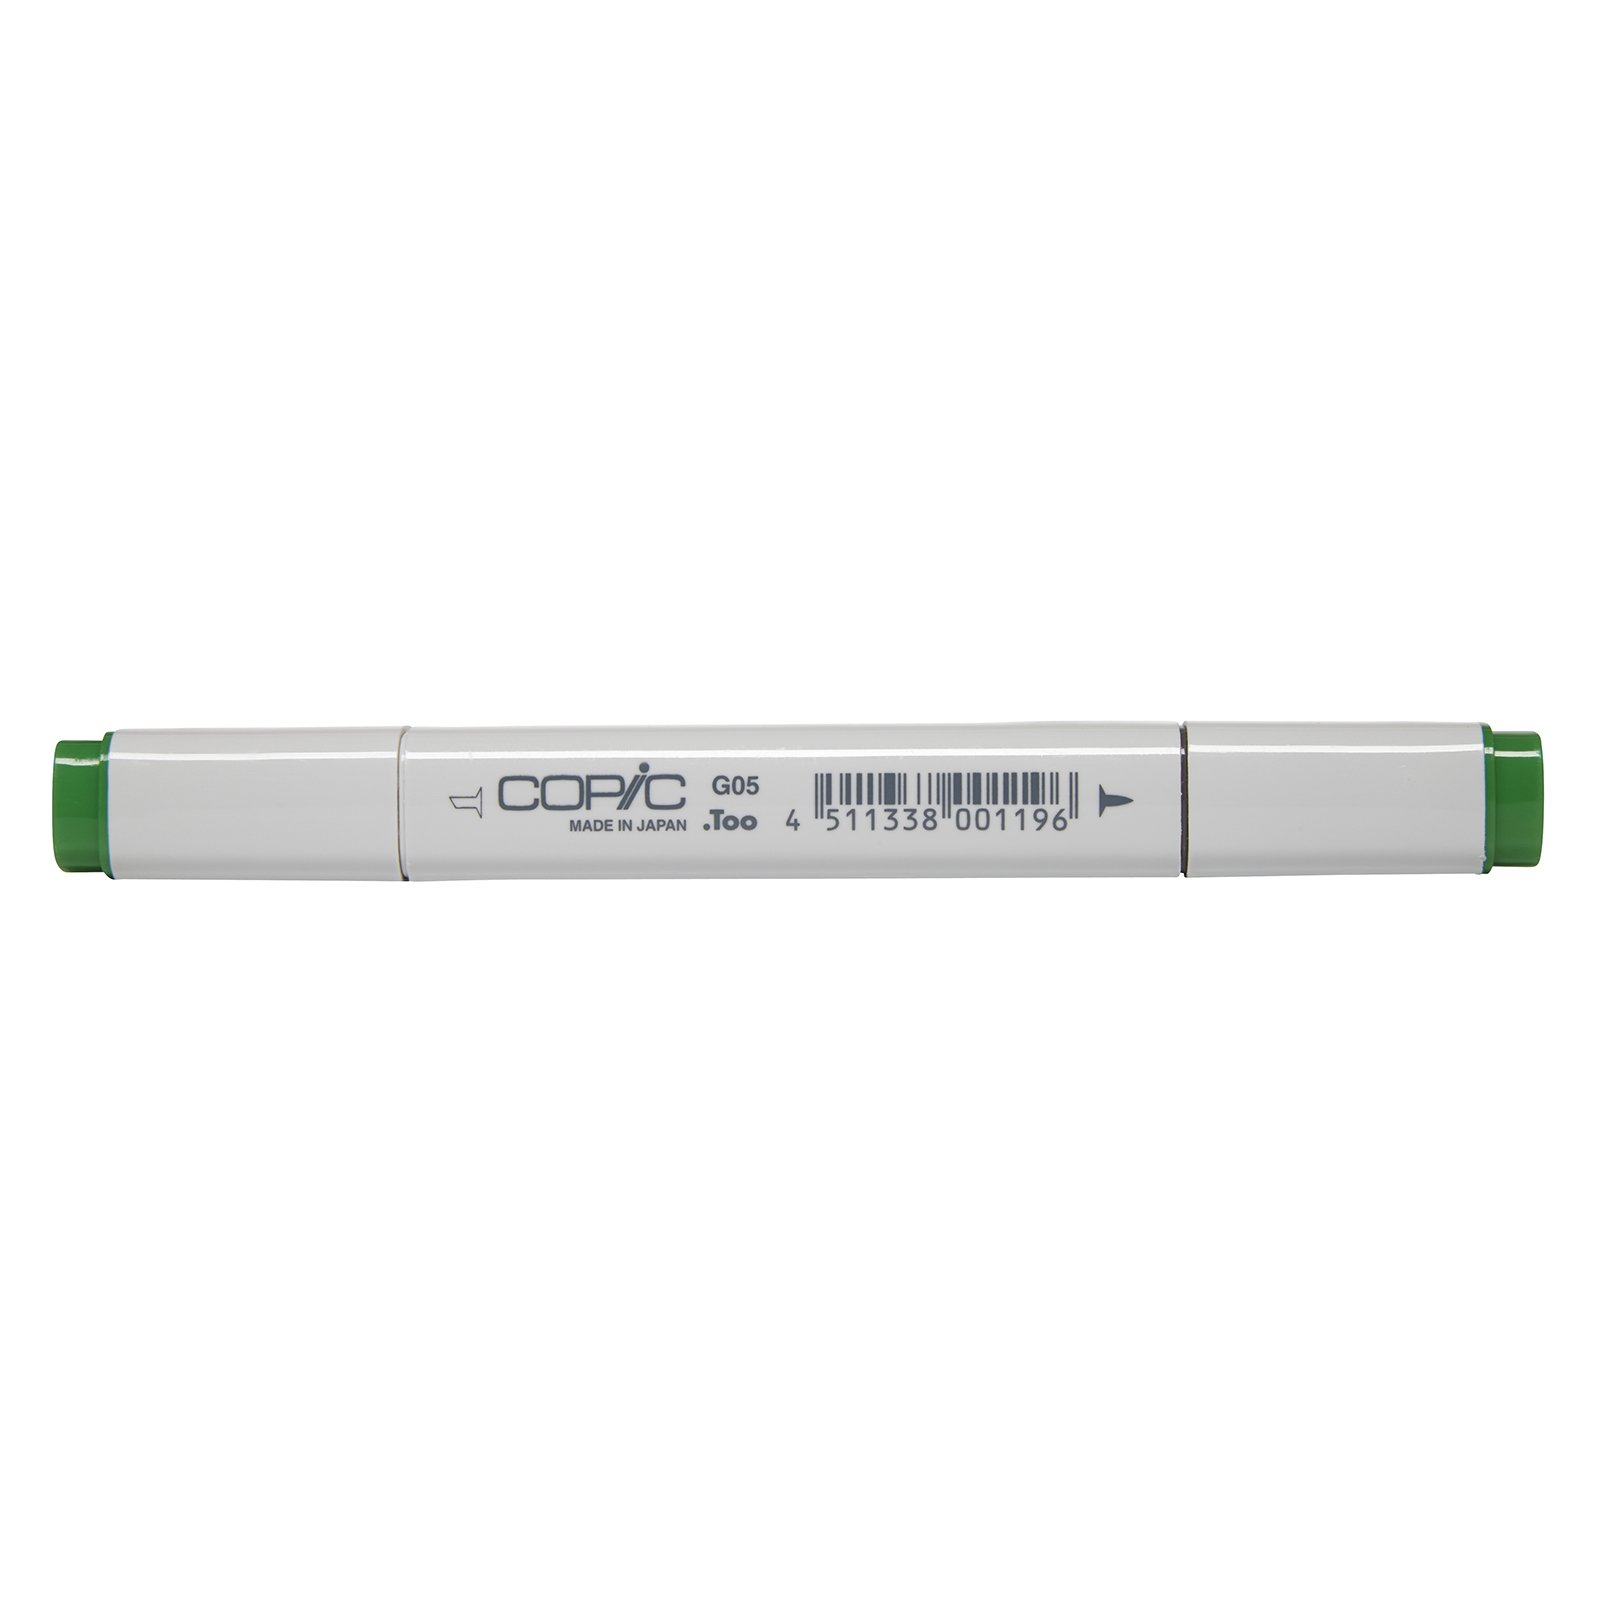 Copic Marker with Replaceable Nib, G05-Copic, Emerald Green